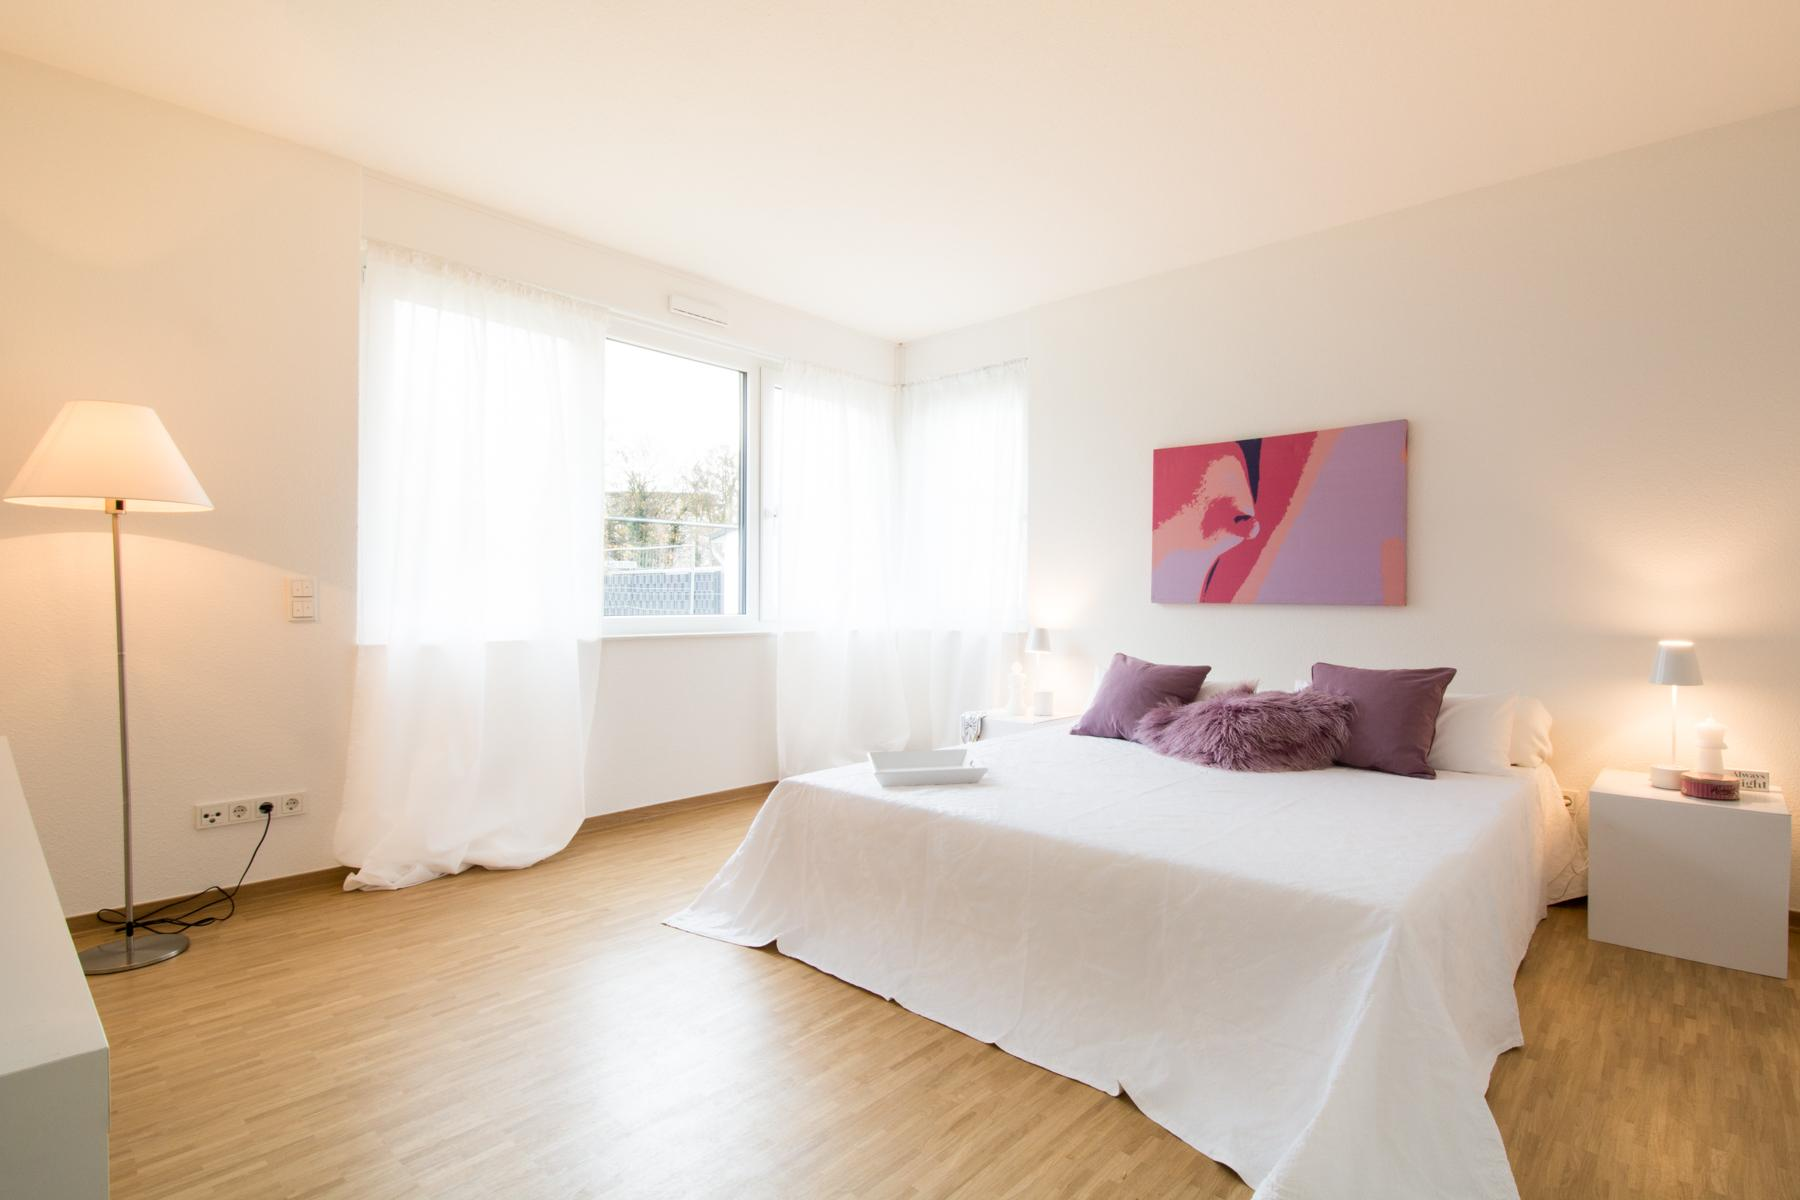 Home Staging Schlafzimmer #bodenbelag #bett ©Luna Home Staging